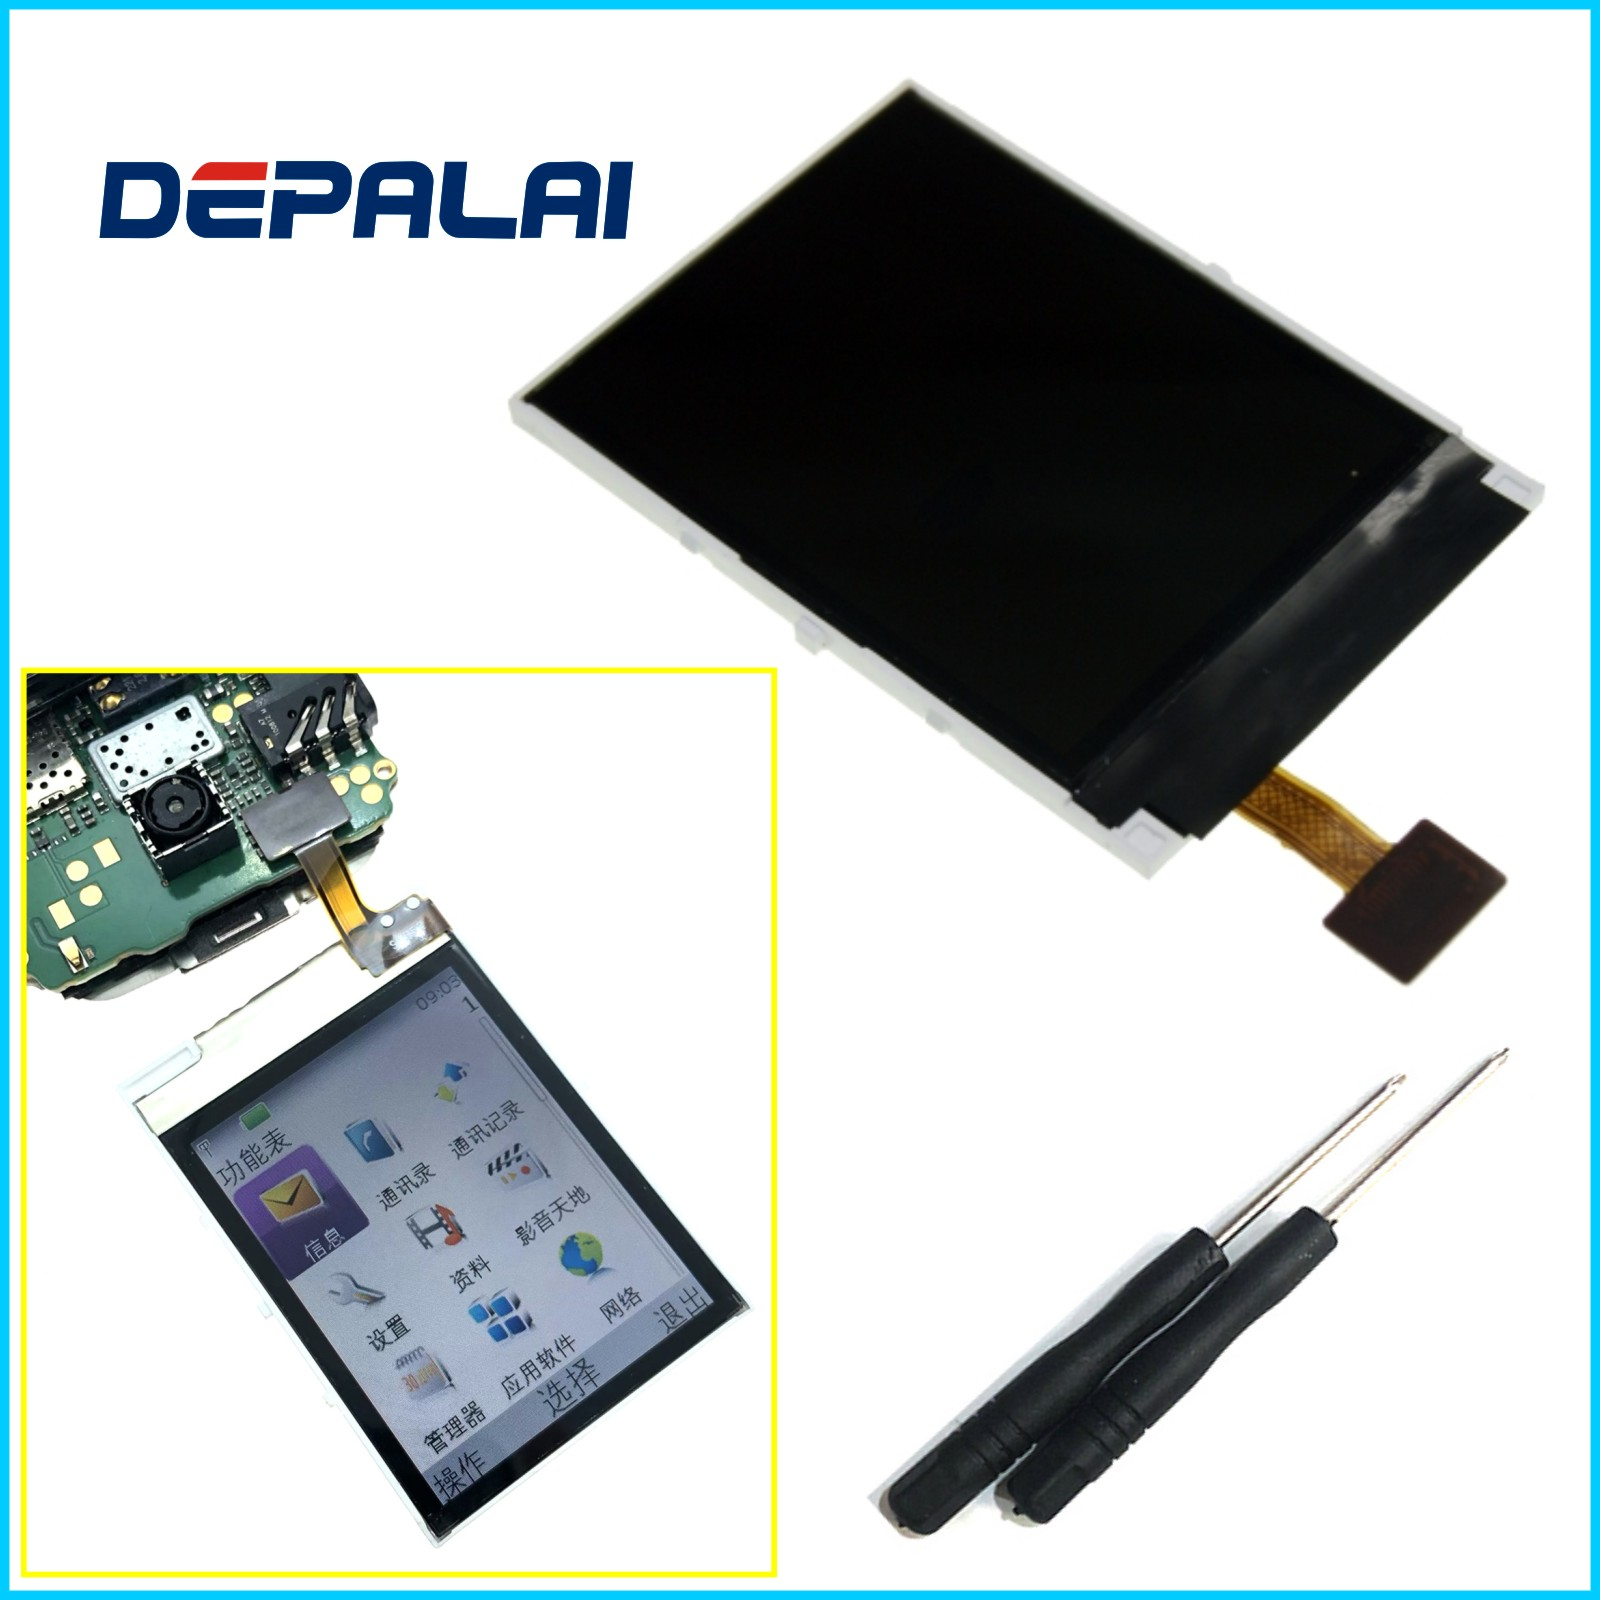 LCD Display Screen For <font><b>Nokia</b></font> 5130 N5000 C2-01 5220 3610 5220 7100S 7210C 2700 <font><b>2730</b></font> LCD + tools Test Replacement Repair Parts image